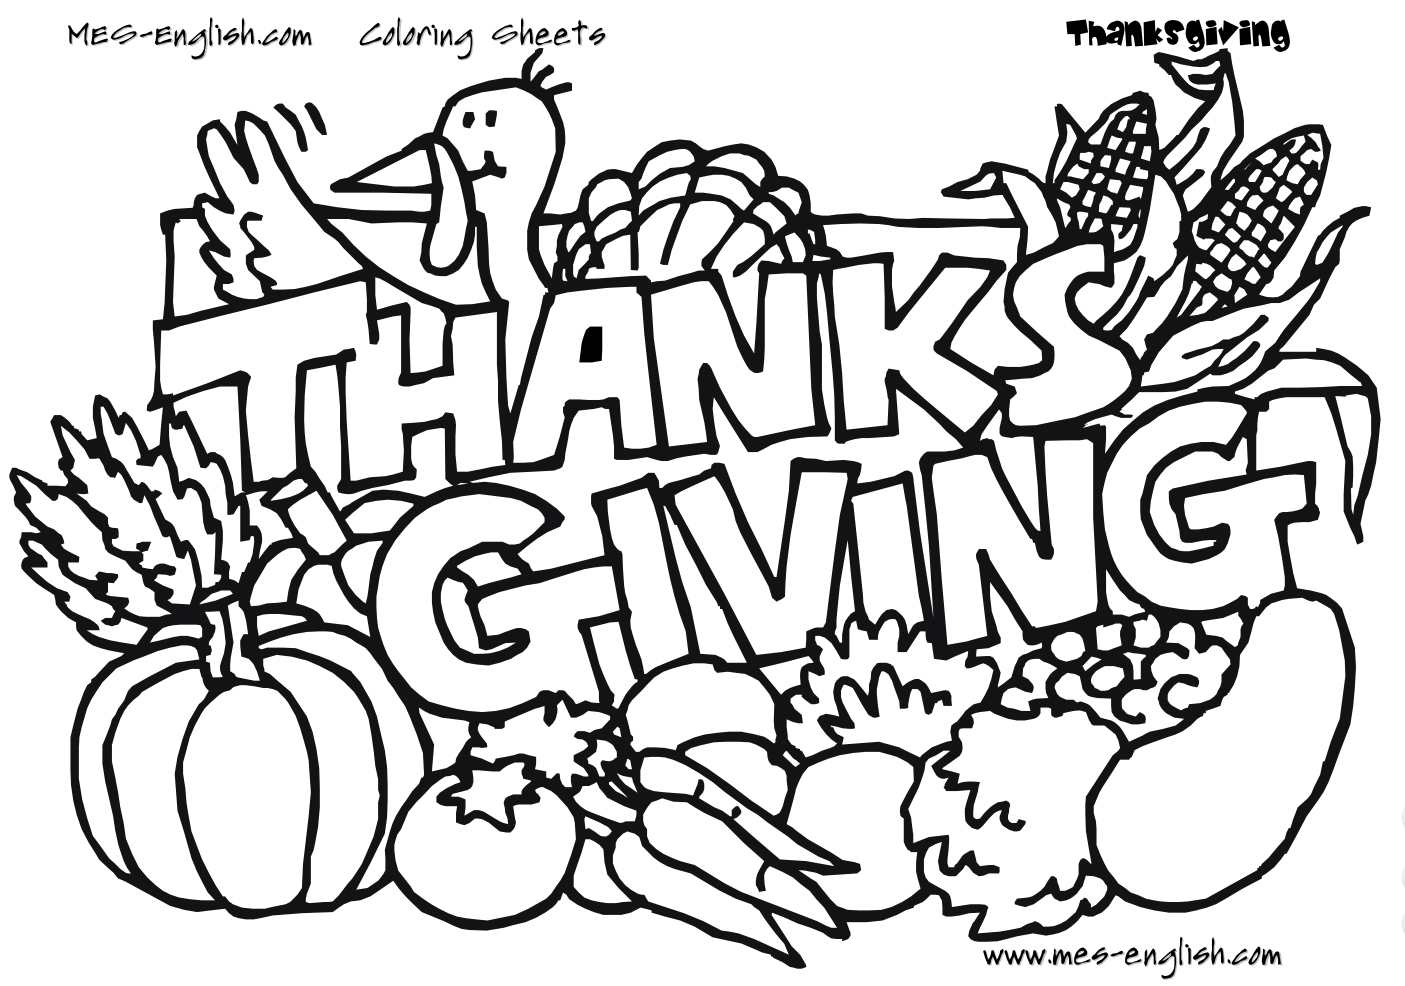 - Free Thanksgiving Coloring Pages For Kids